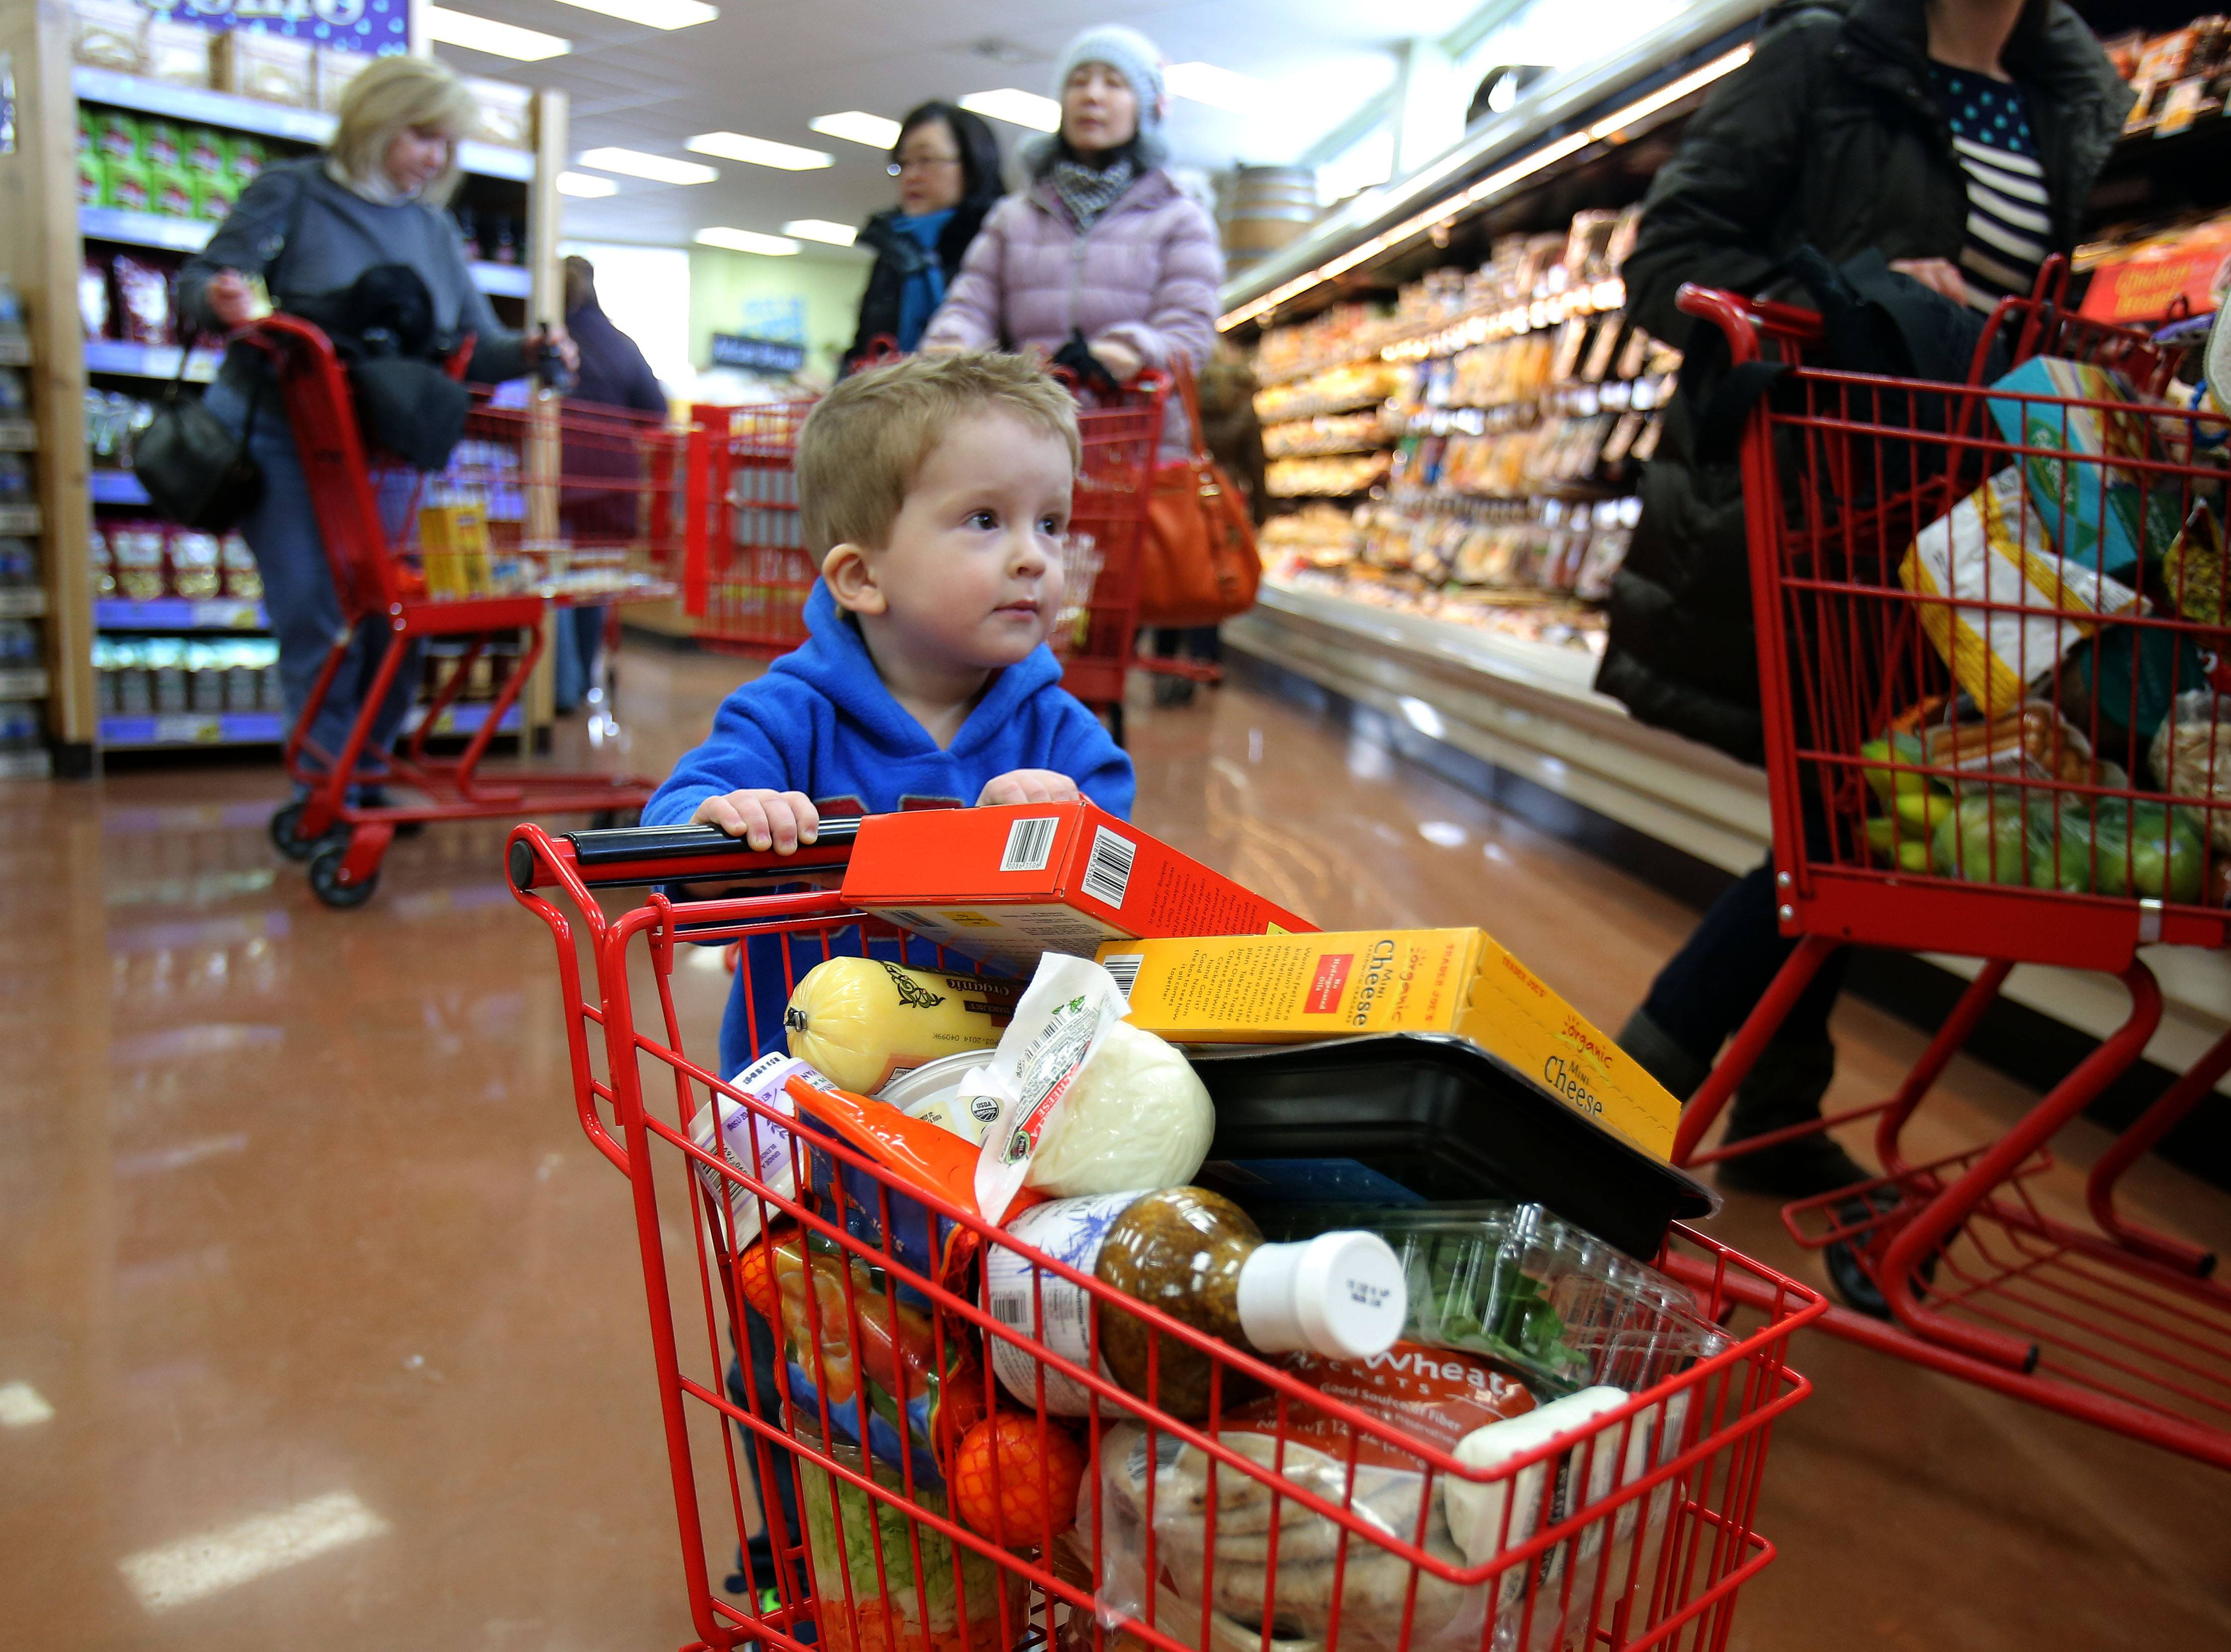 Shoppers turn out for Trader Joe's opening in Libertyville